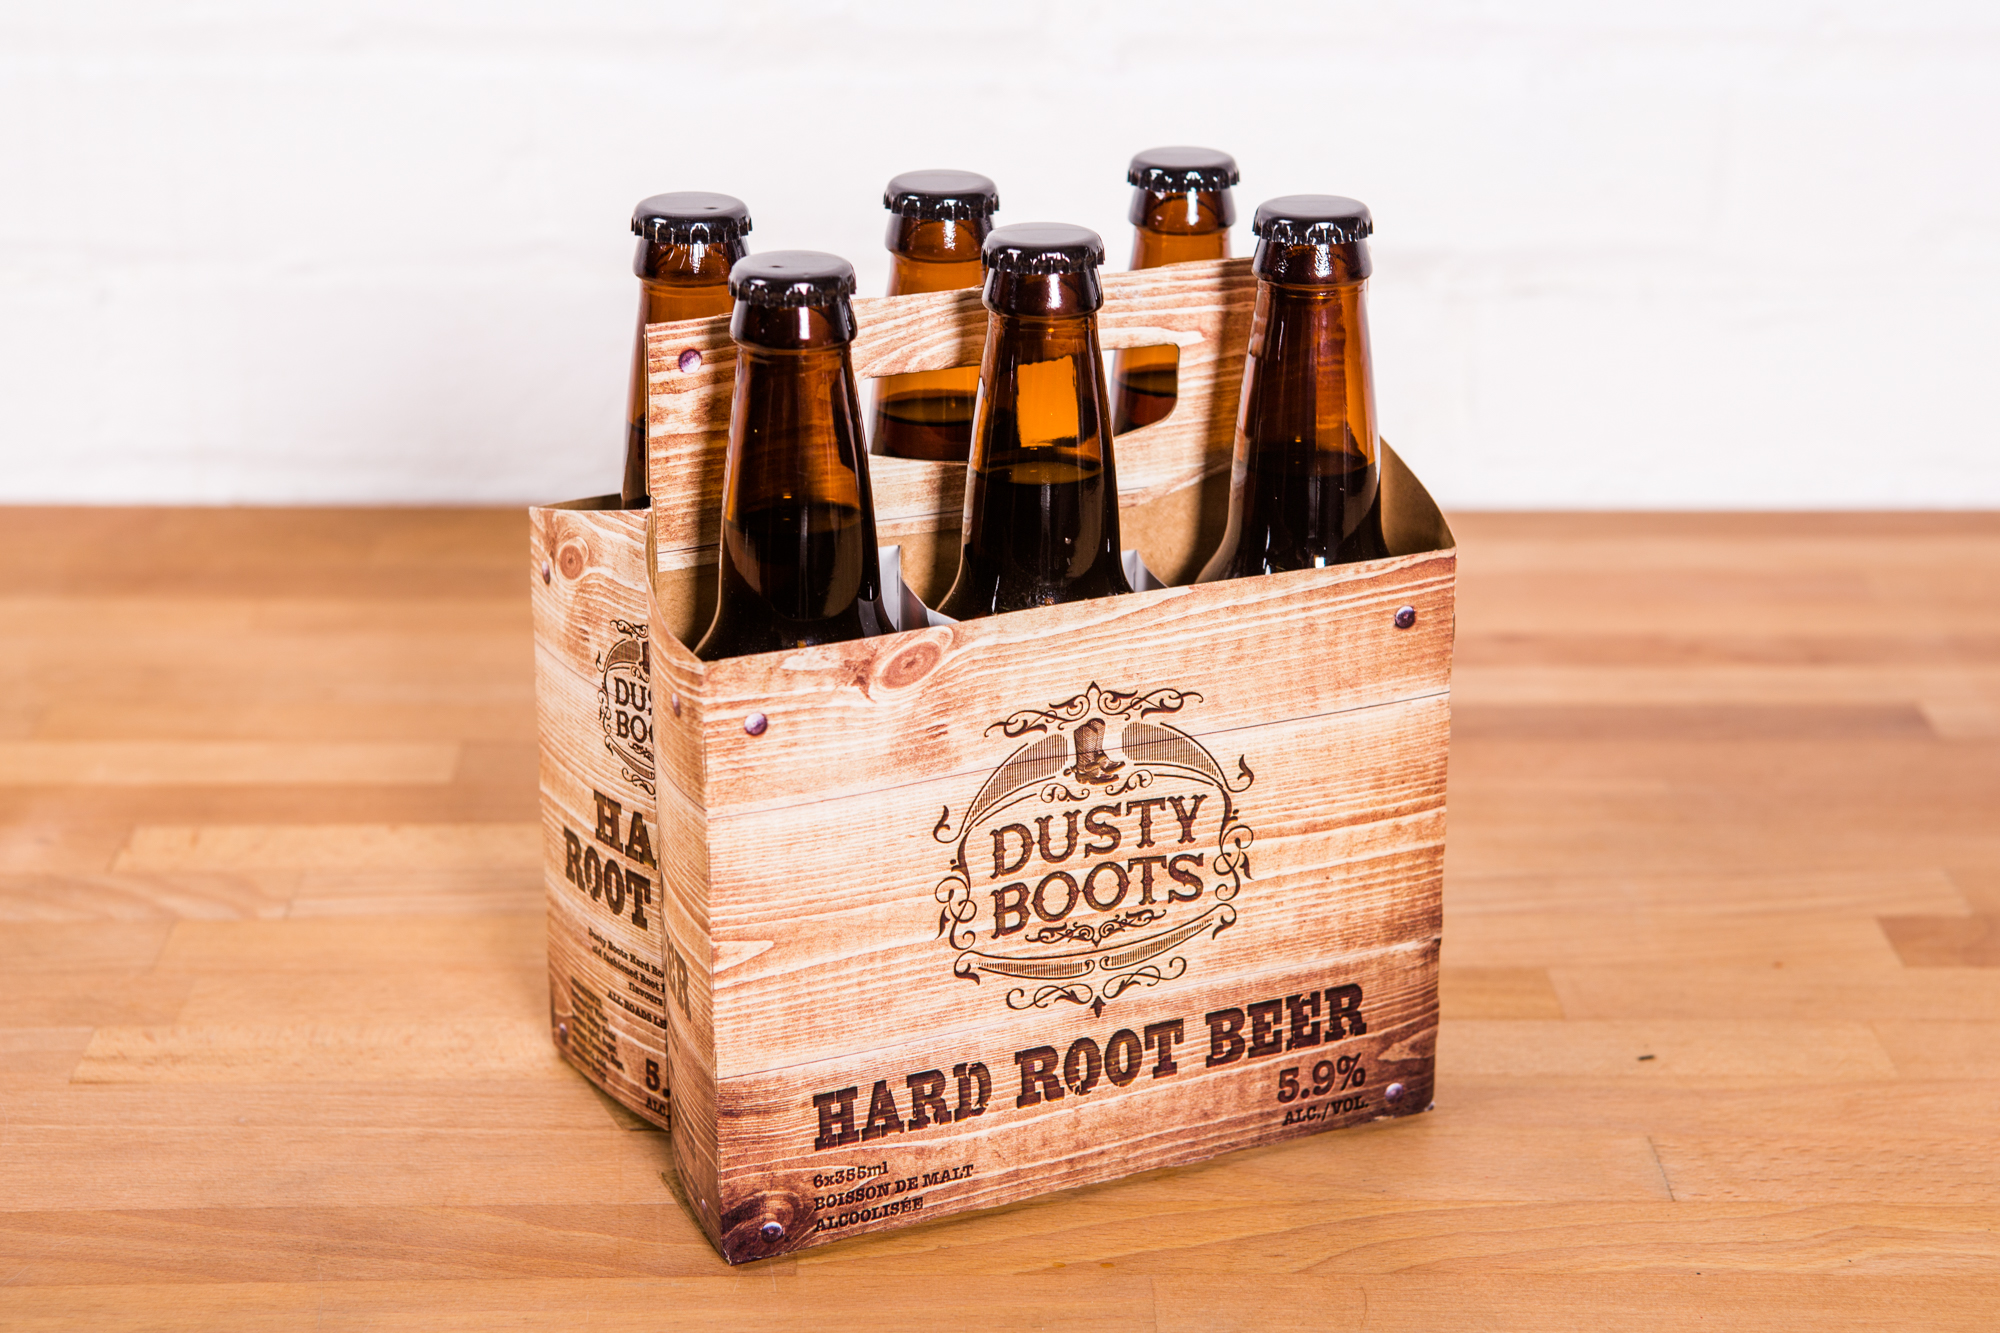 Cool Dusty Boots Hard Root Beer Dusty Boots Hard Root Beer Iconic Brewing Alcoholic Root Beer Float Alcoholic Root Beer Float Rum nice food Alcoholic Root Beer